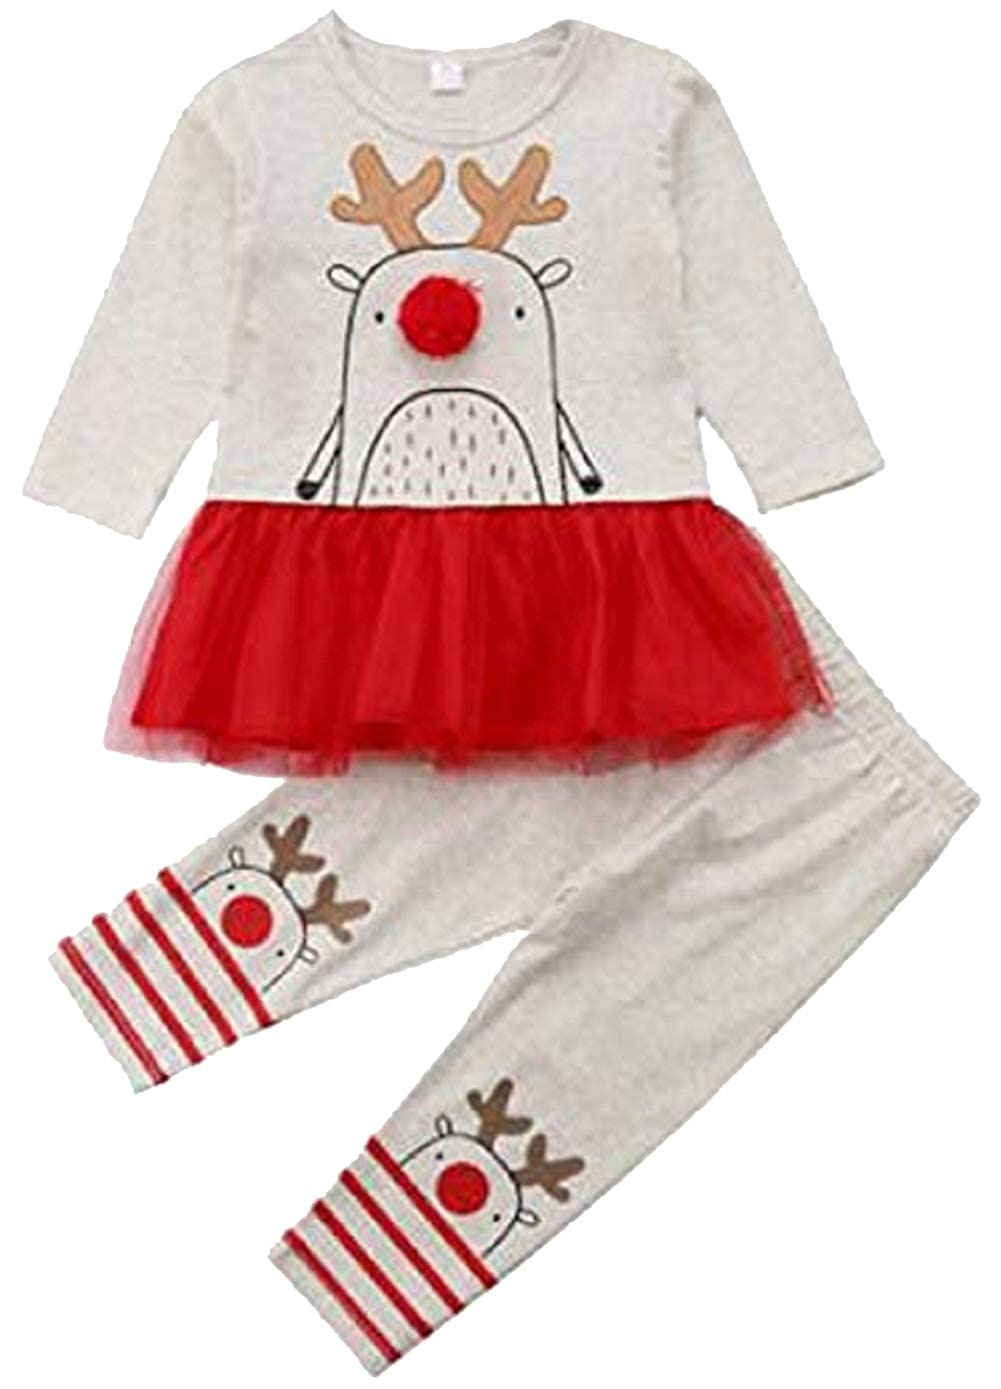 SUPEYA Baby Girls Christmas Cartoon Elk Print Dress Tops+ Leggings 2Pcs Sets Outfits